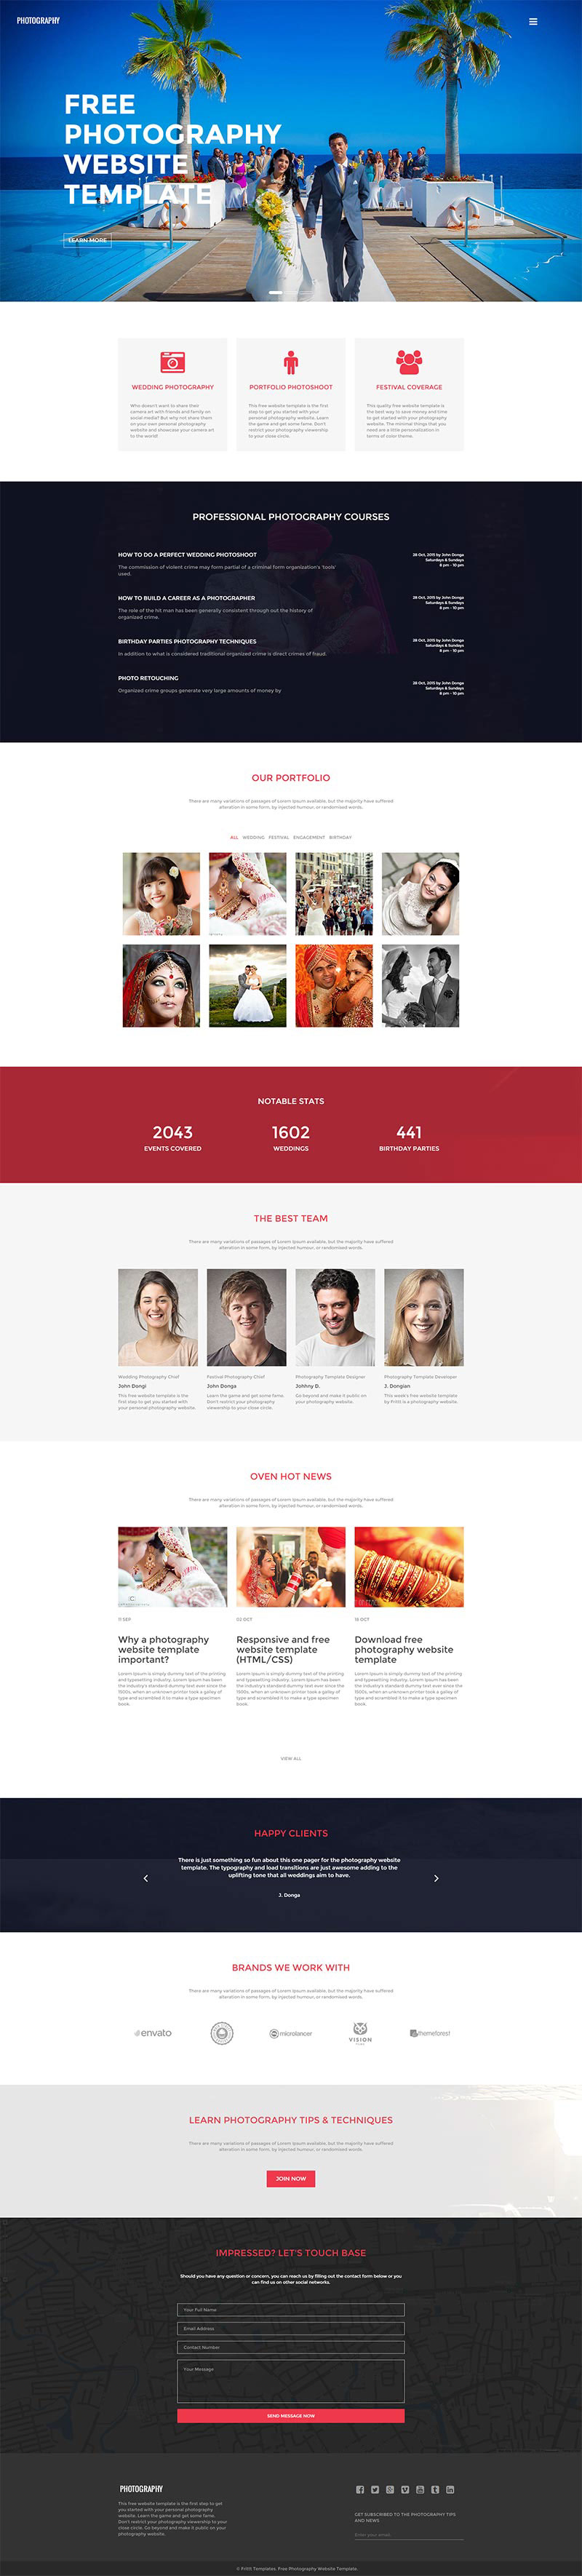 Free Photography Website Template Photography On Behance - Free photography website templates